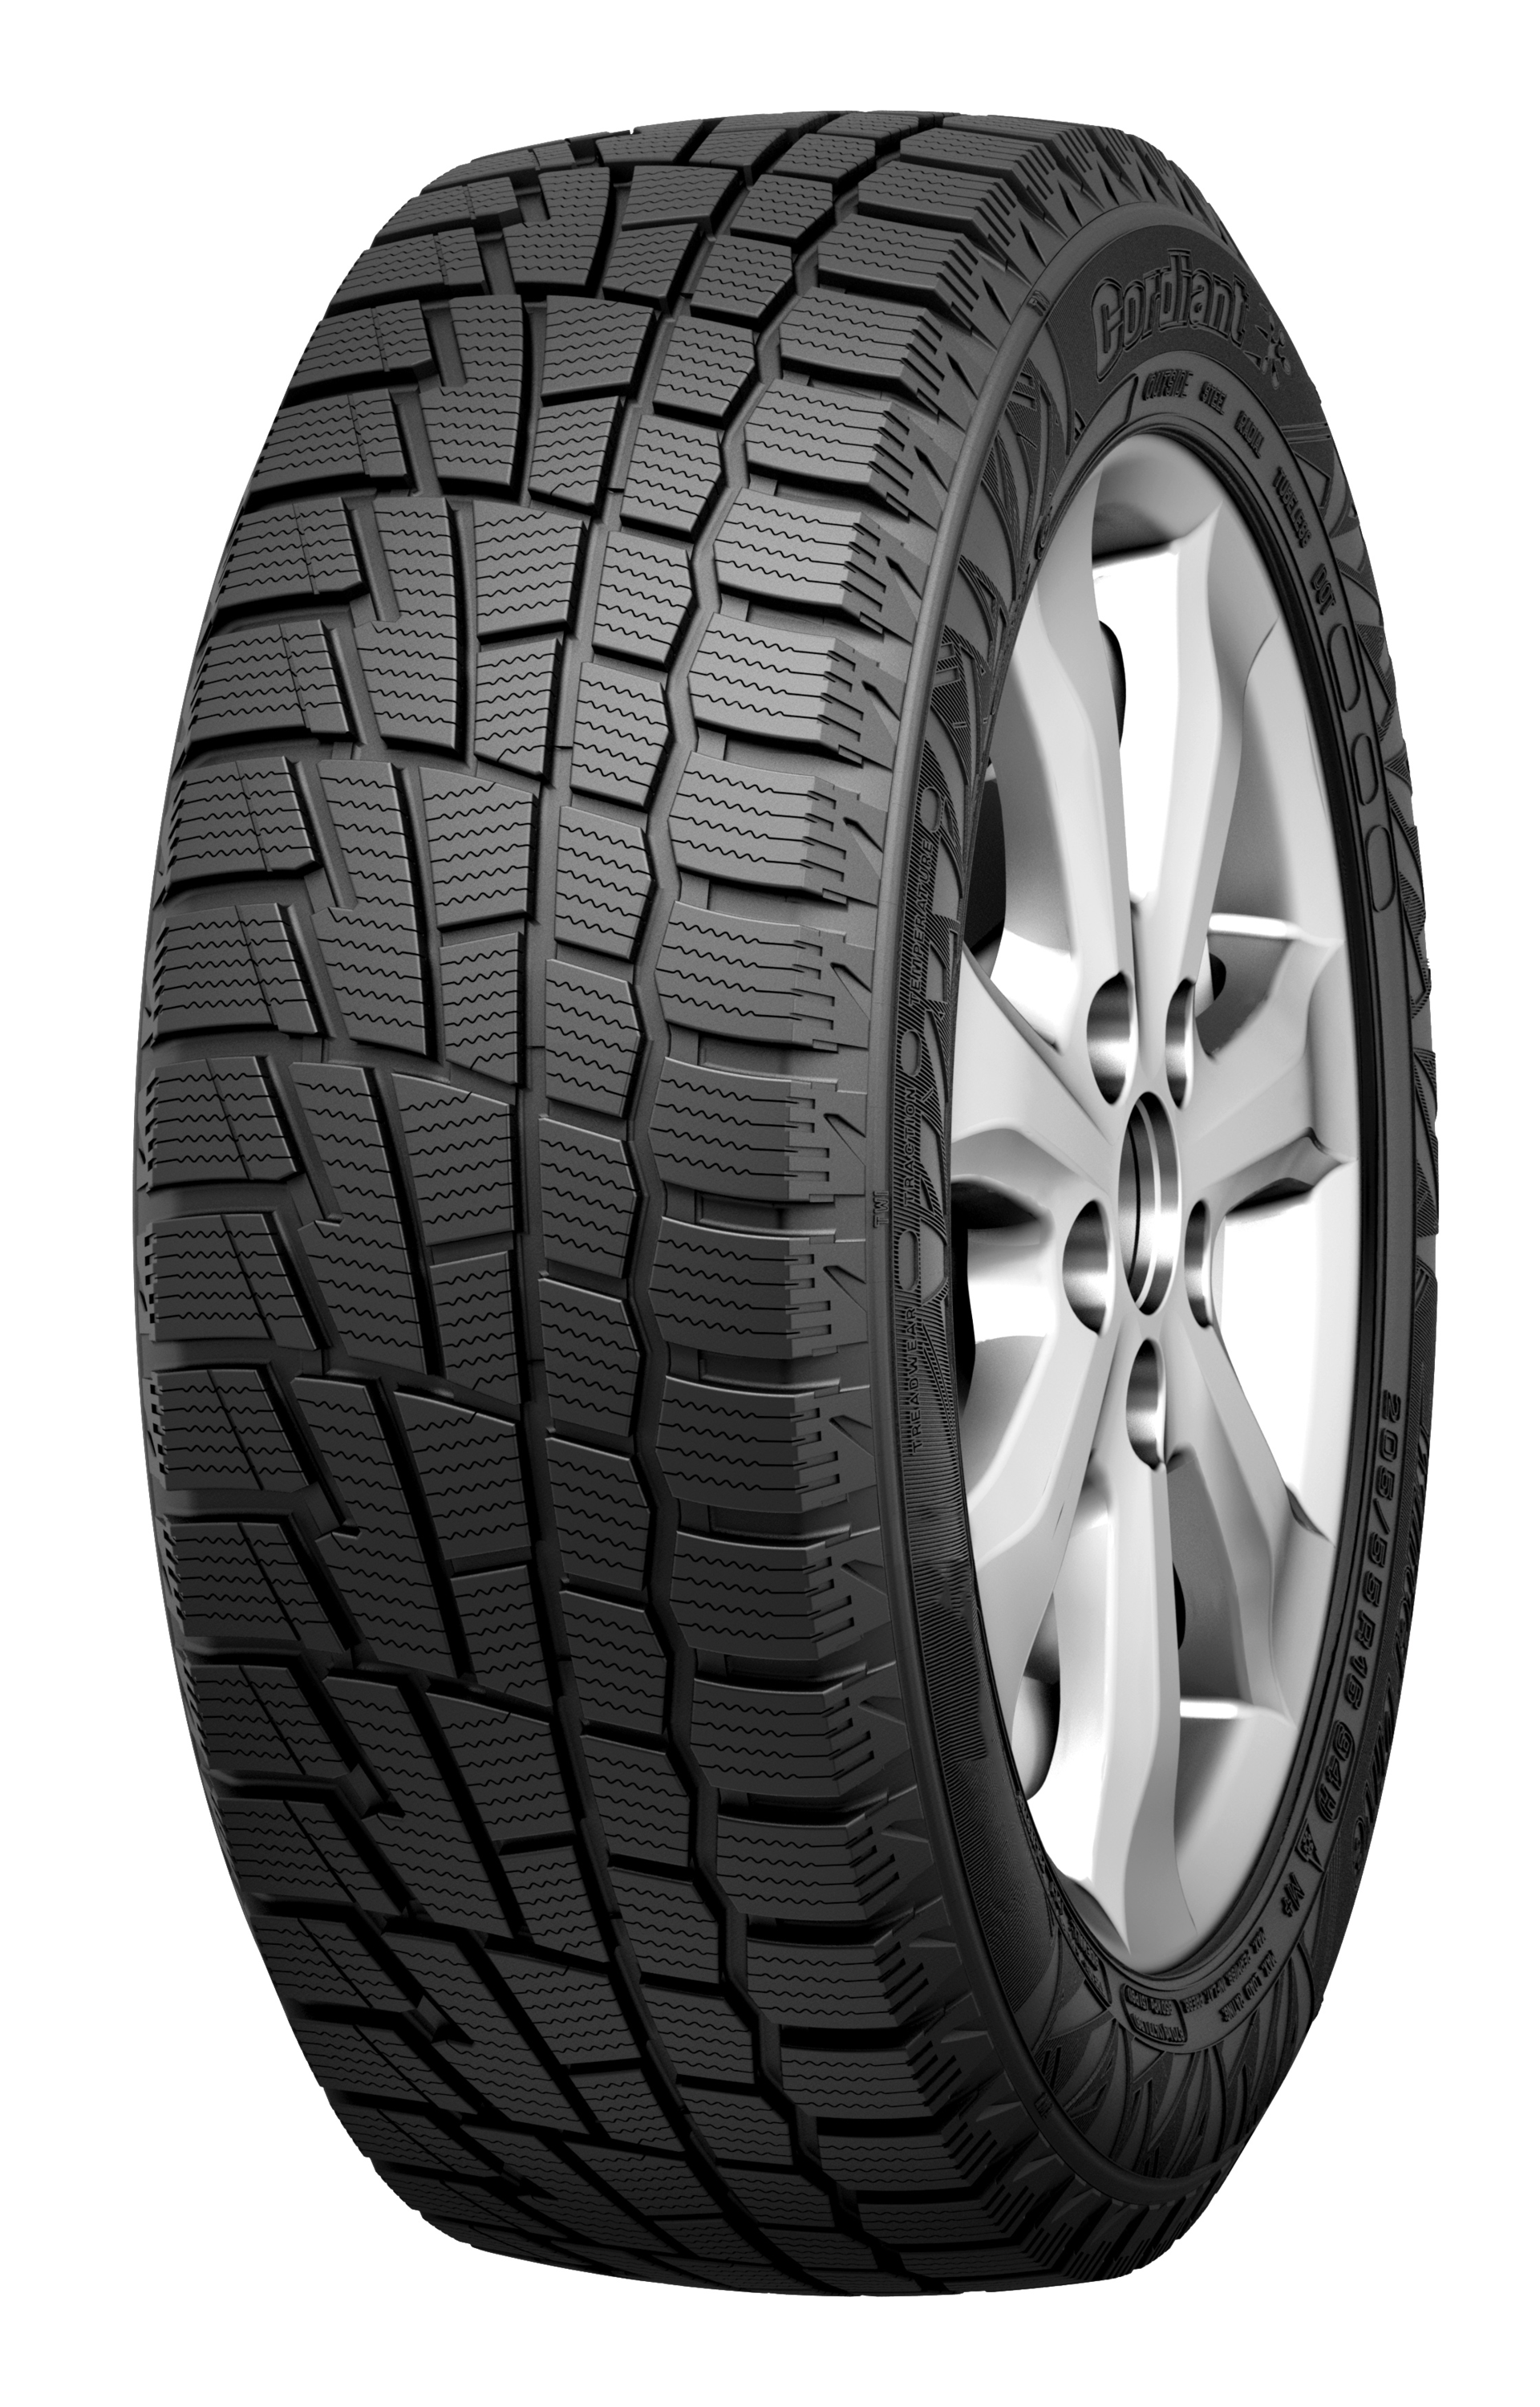 CORDIANT WINTER  DRIVE PW-1 175/70R13 б/к  82T